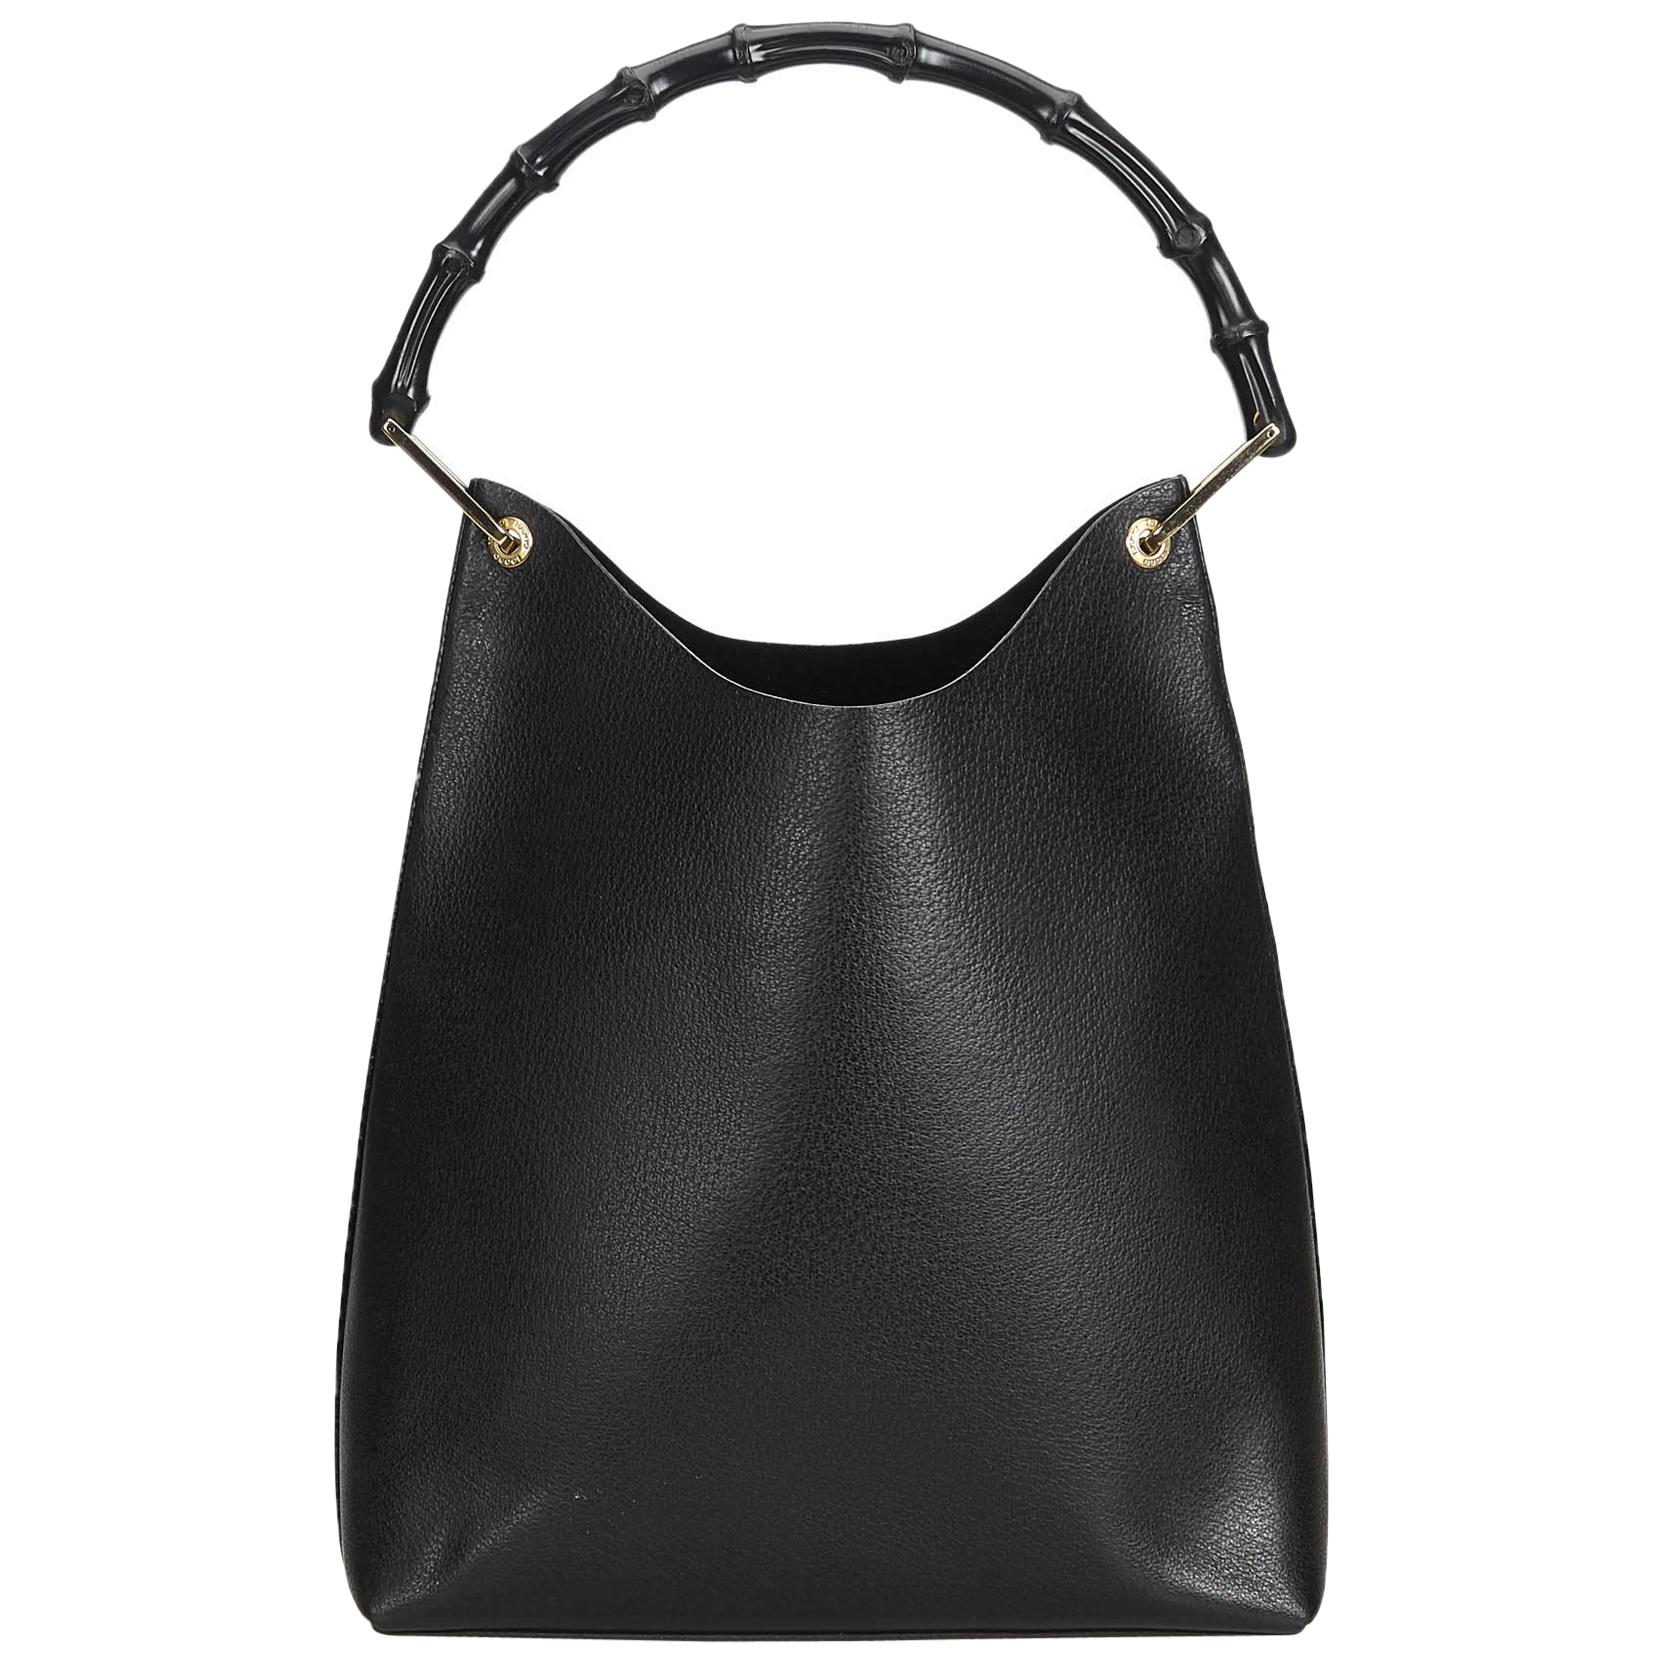 1b6538c3aef Gucci Bamboo Bags - 363 For Sale on 1stdibs